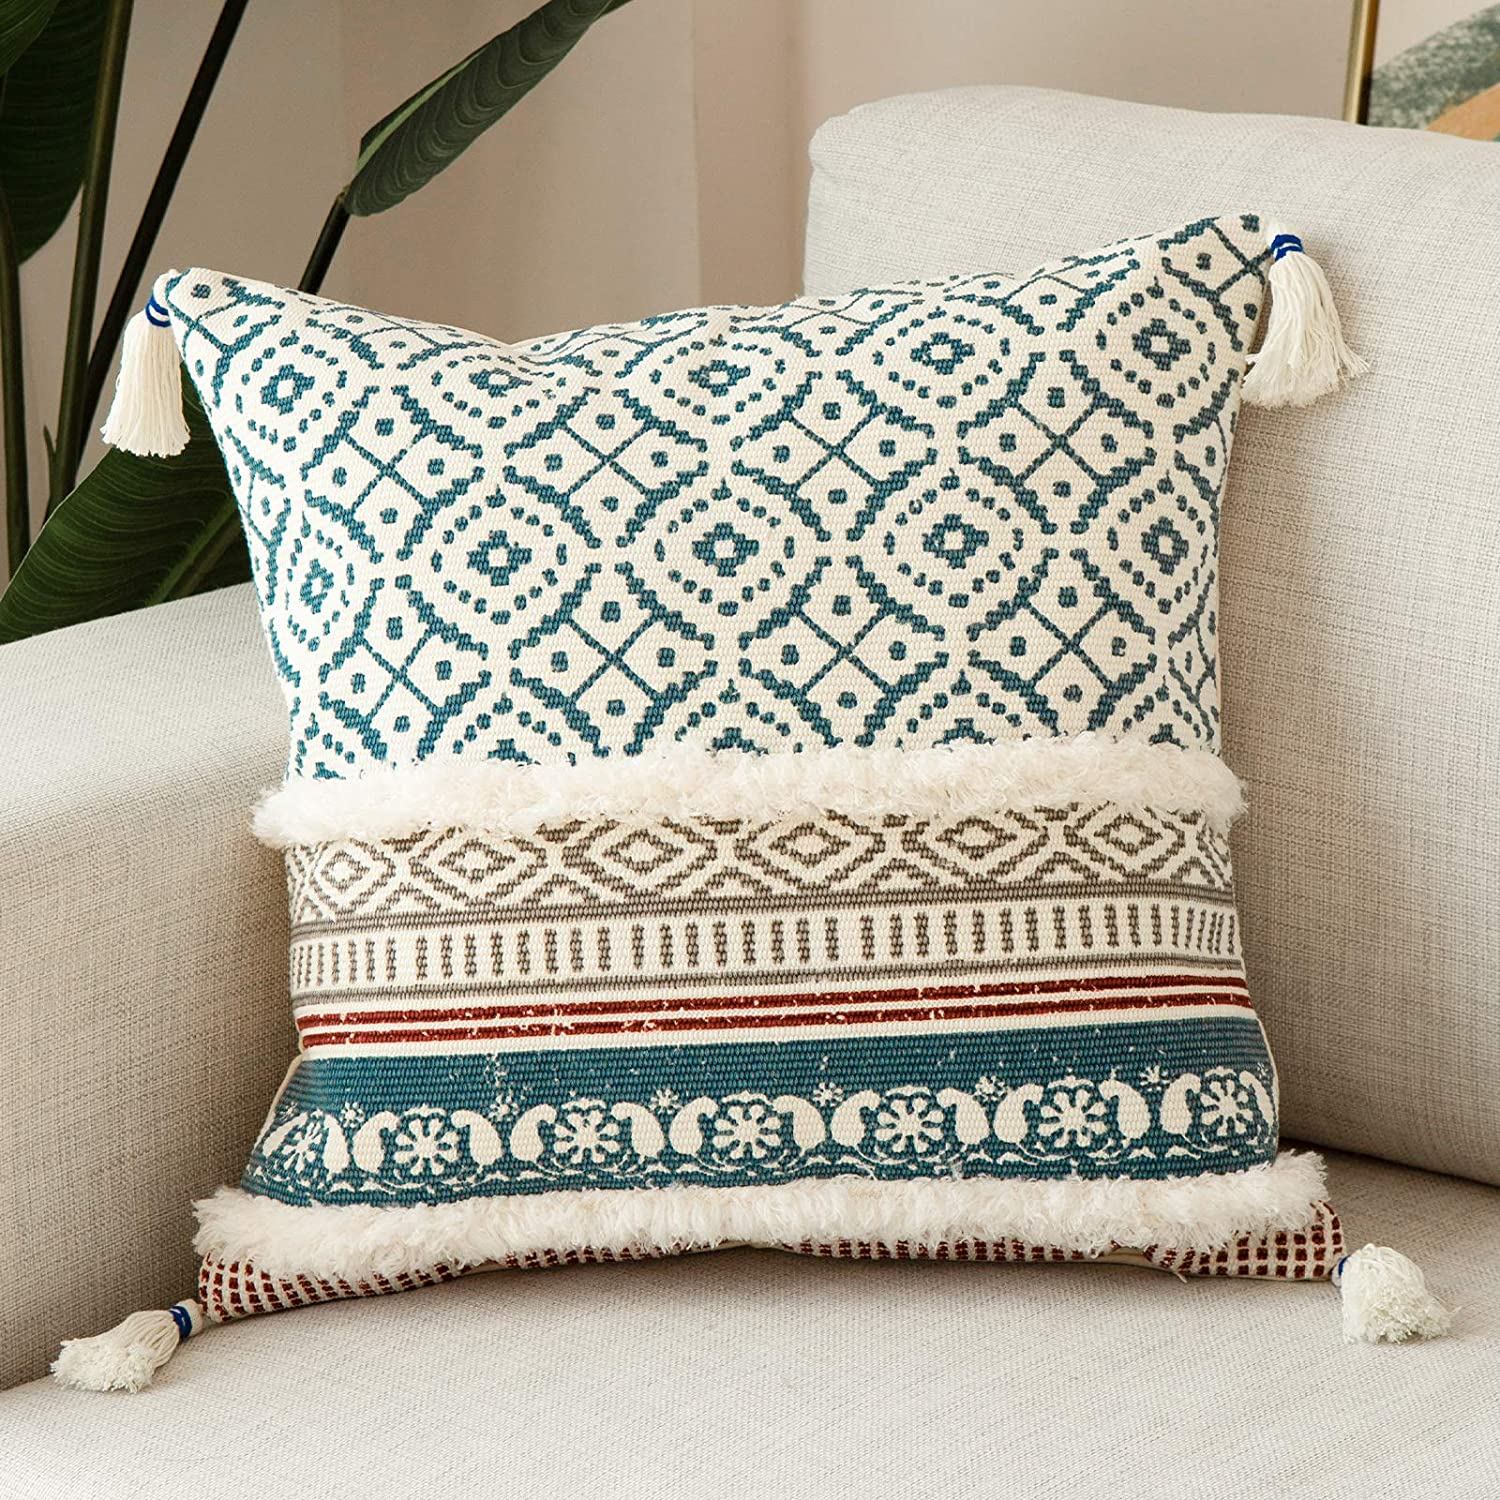 Boho Tufted Decorative Throw Pillow Covers for Couch Sofa - Modern Moroccan Style Pillow Cases with Tassels, Accent Decor Pillow for Bedroom Car Hotel, 18x18 Inches, Blue